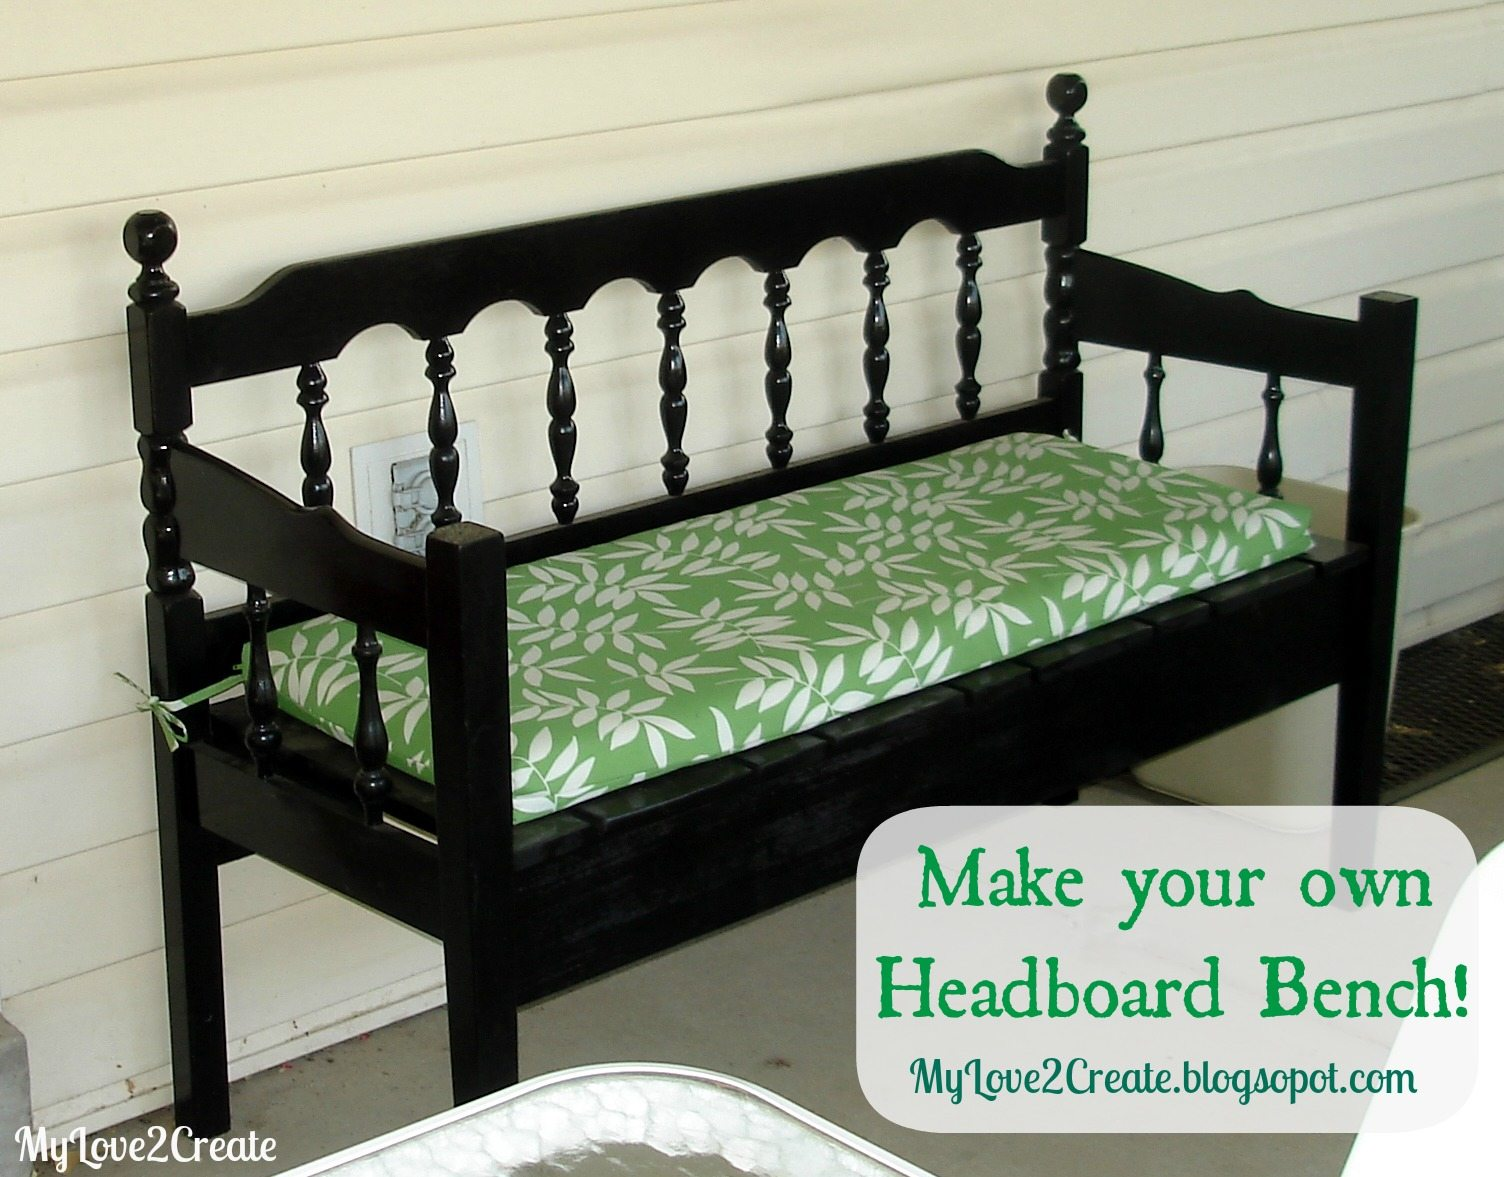 Headboard bench, MyLove2Create